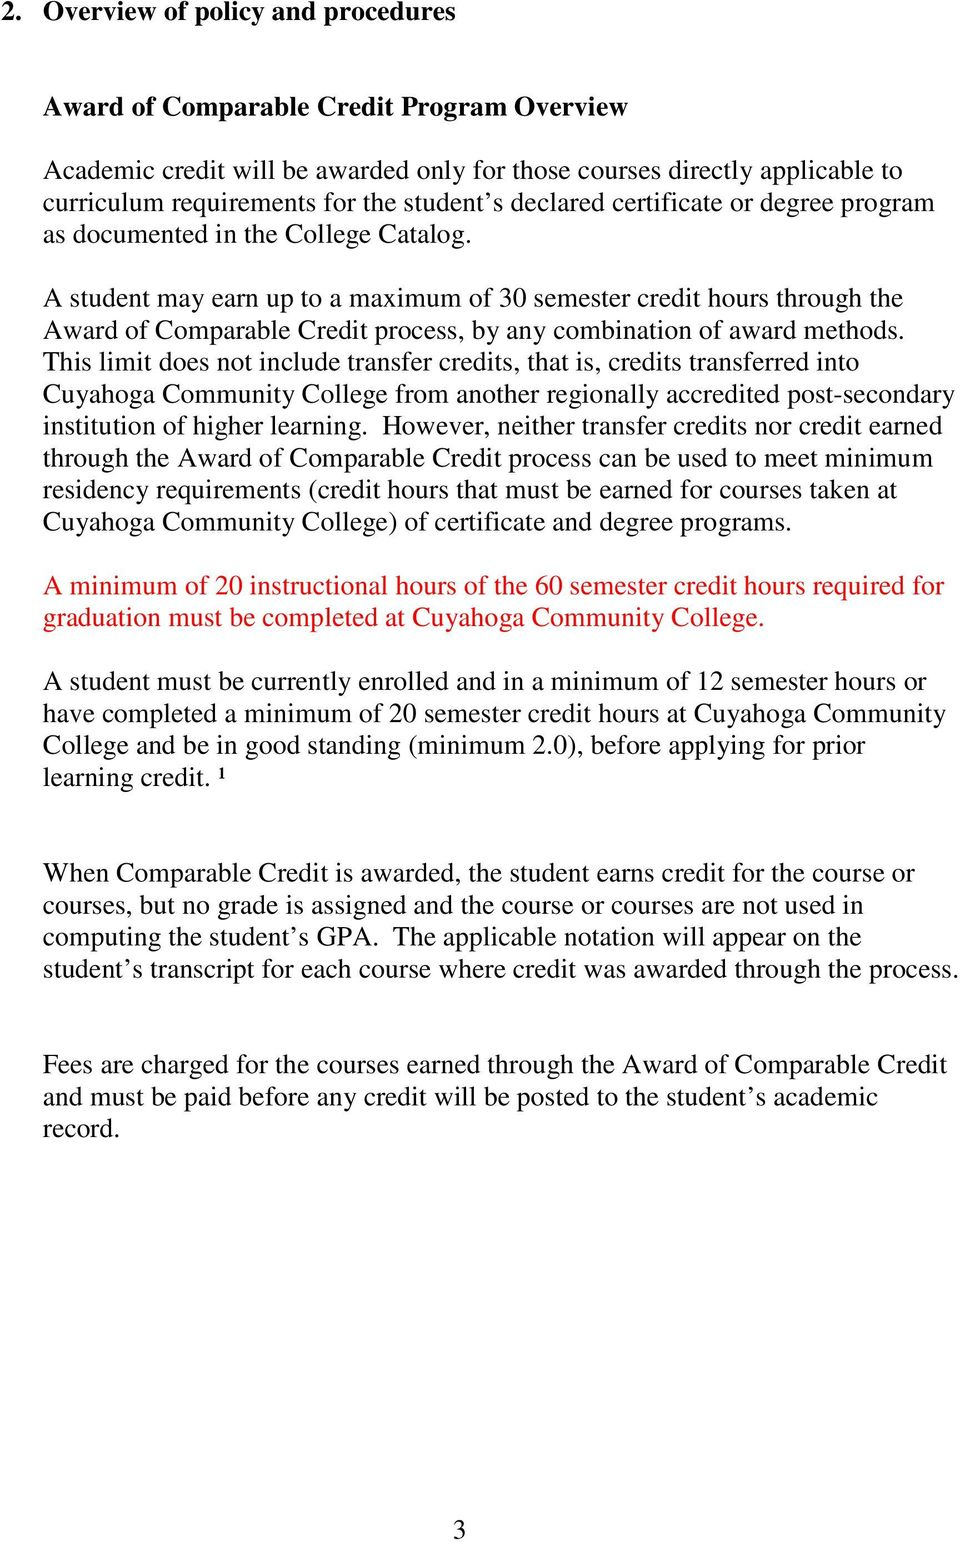 A student may earn up to a maximum of 30 semester credit hours through the Award of Comparable Credit process, by any combination of award methods.